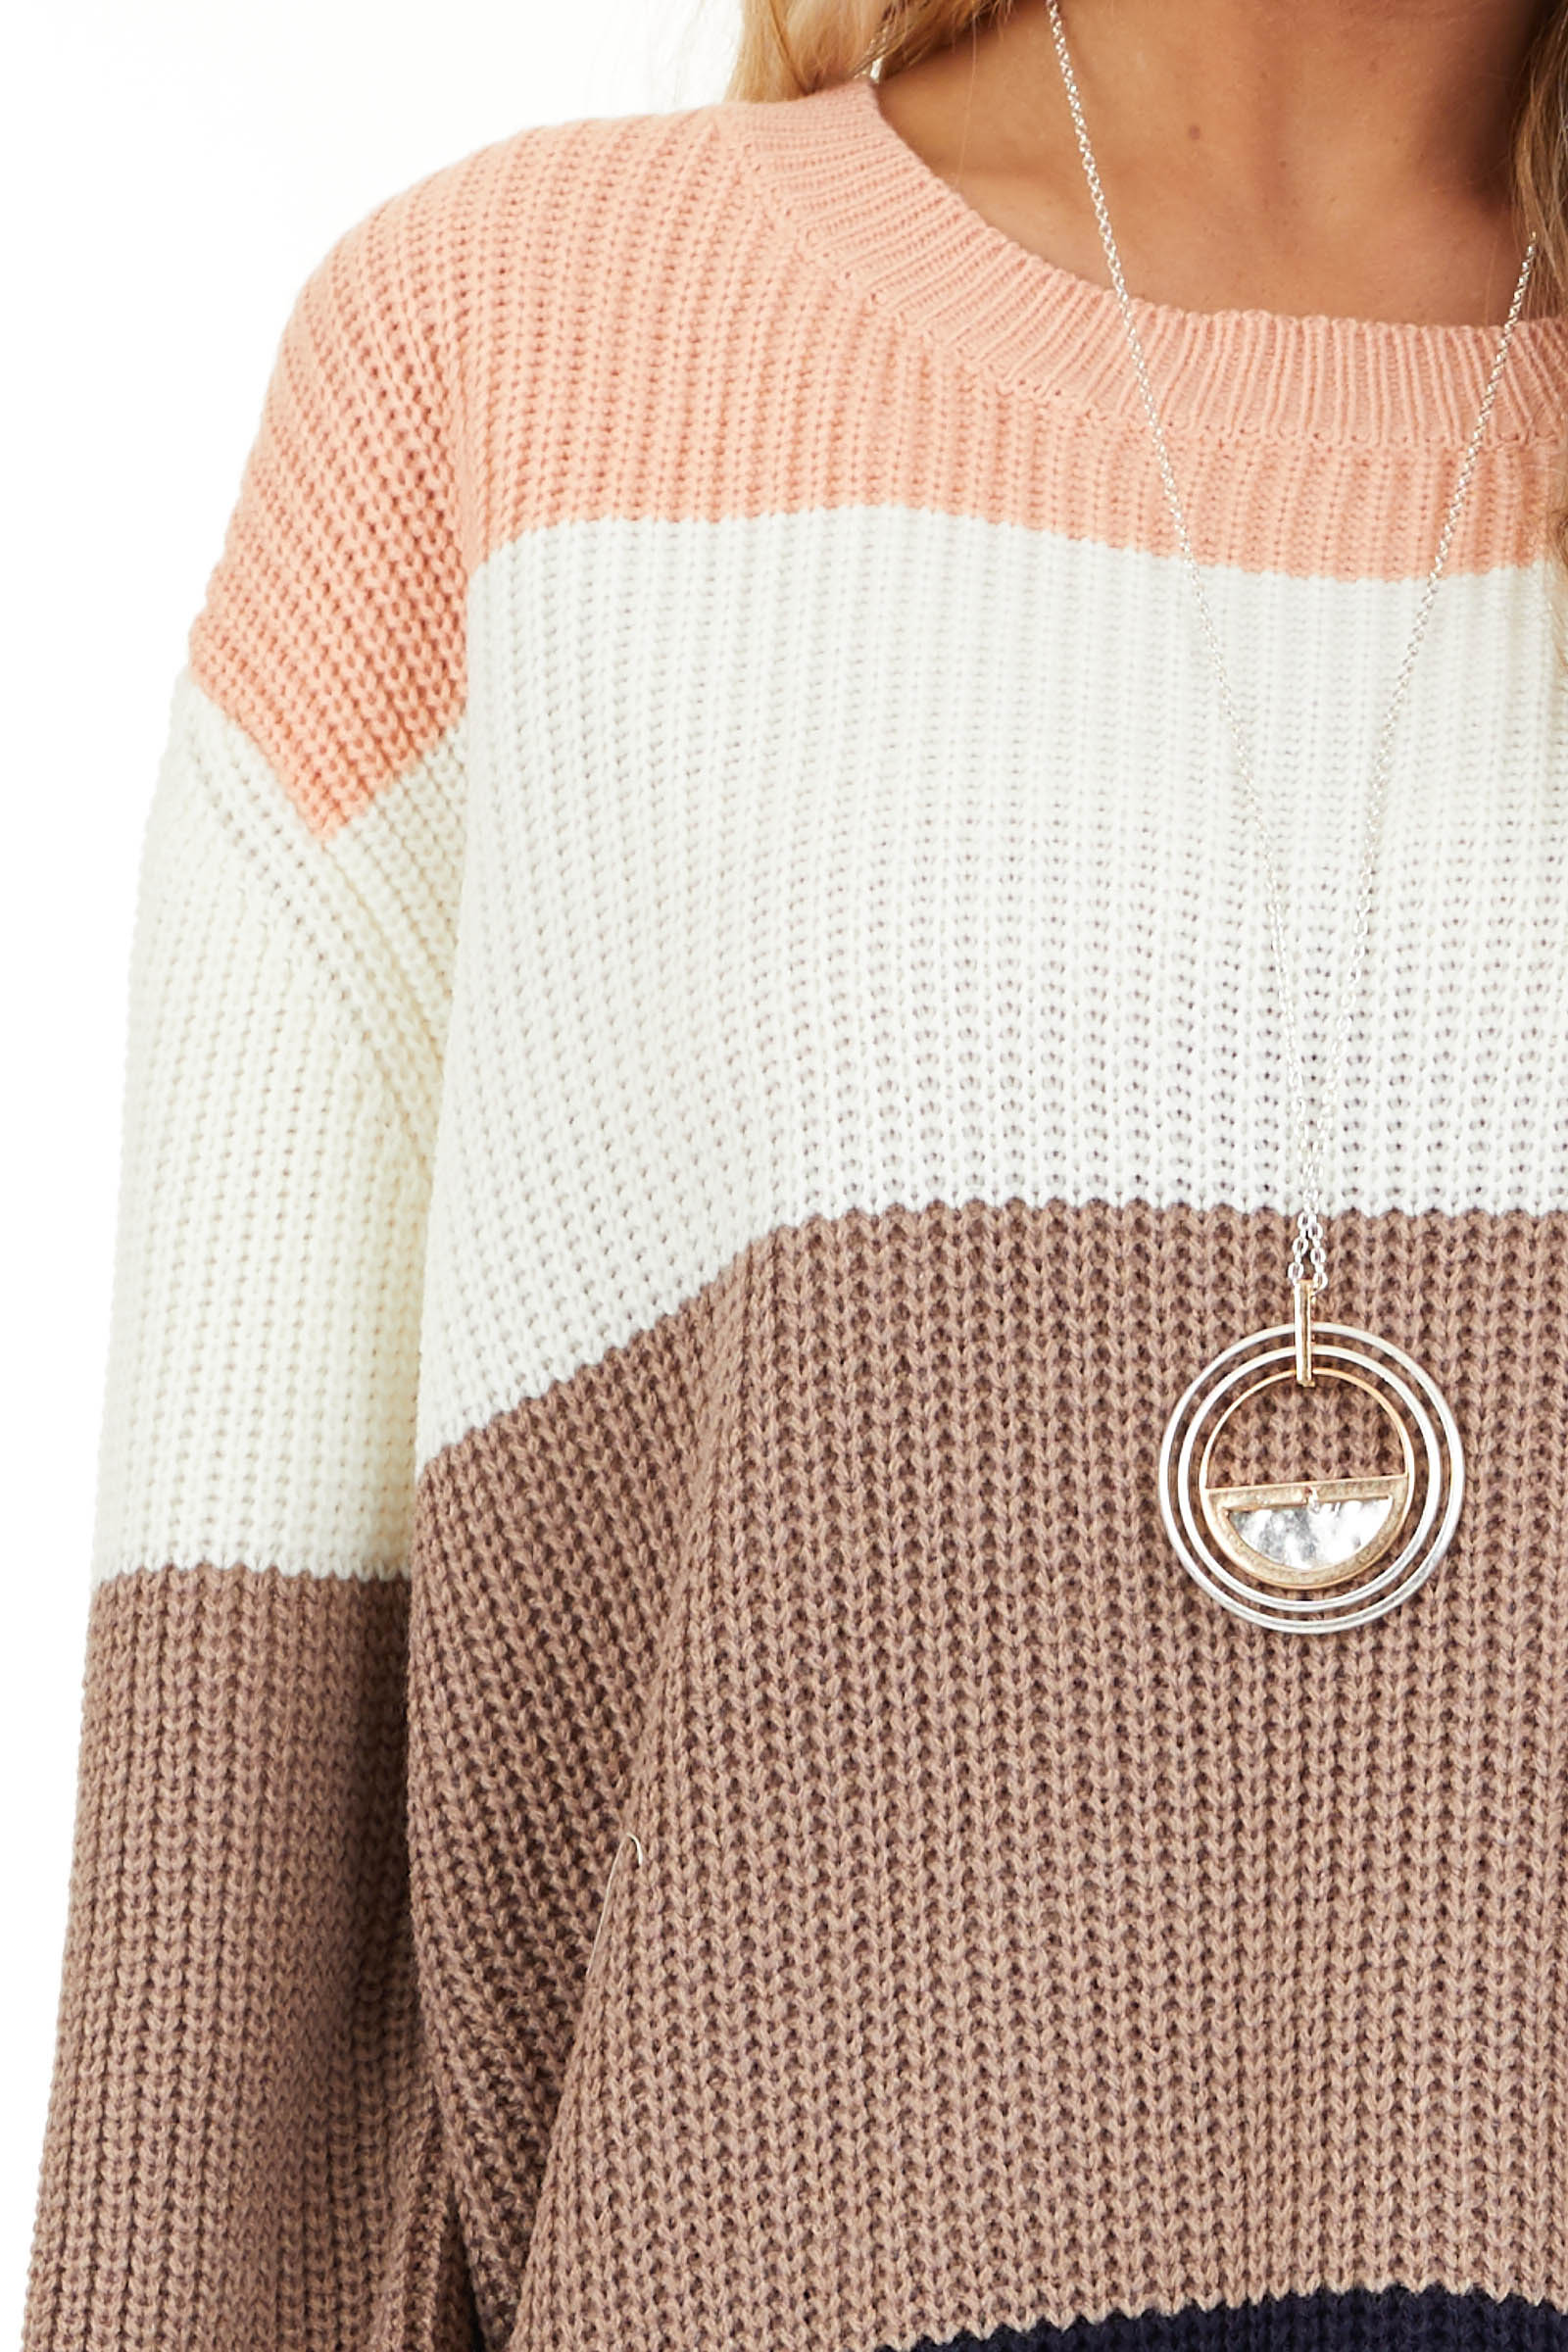 Navy and Peach Color Block Sweater with Long Sleeves detail